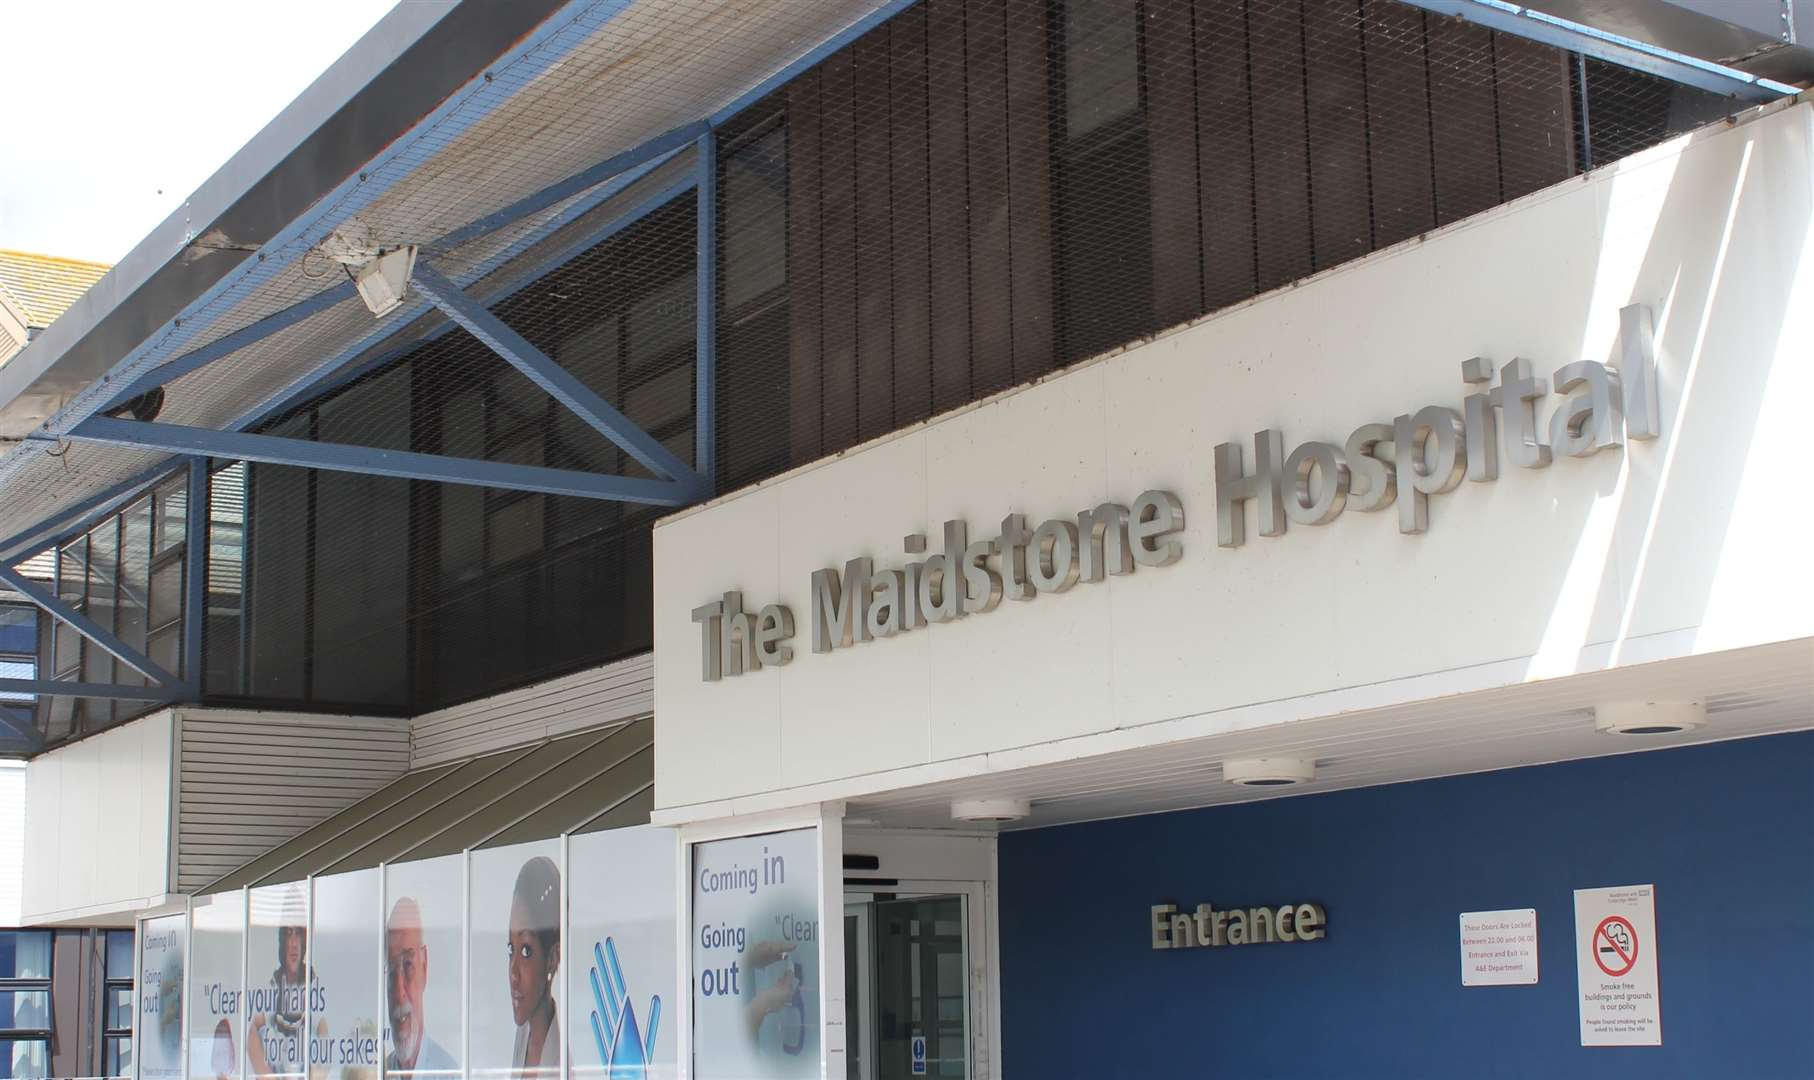 Maidstone and Tunbridge Wells NHS Trust are seeing record people at their A&E departments